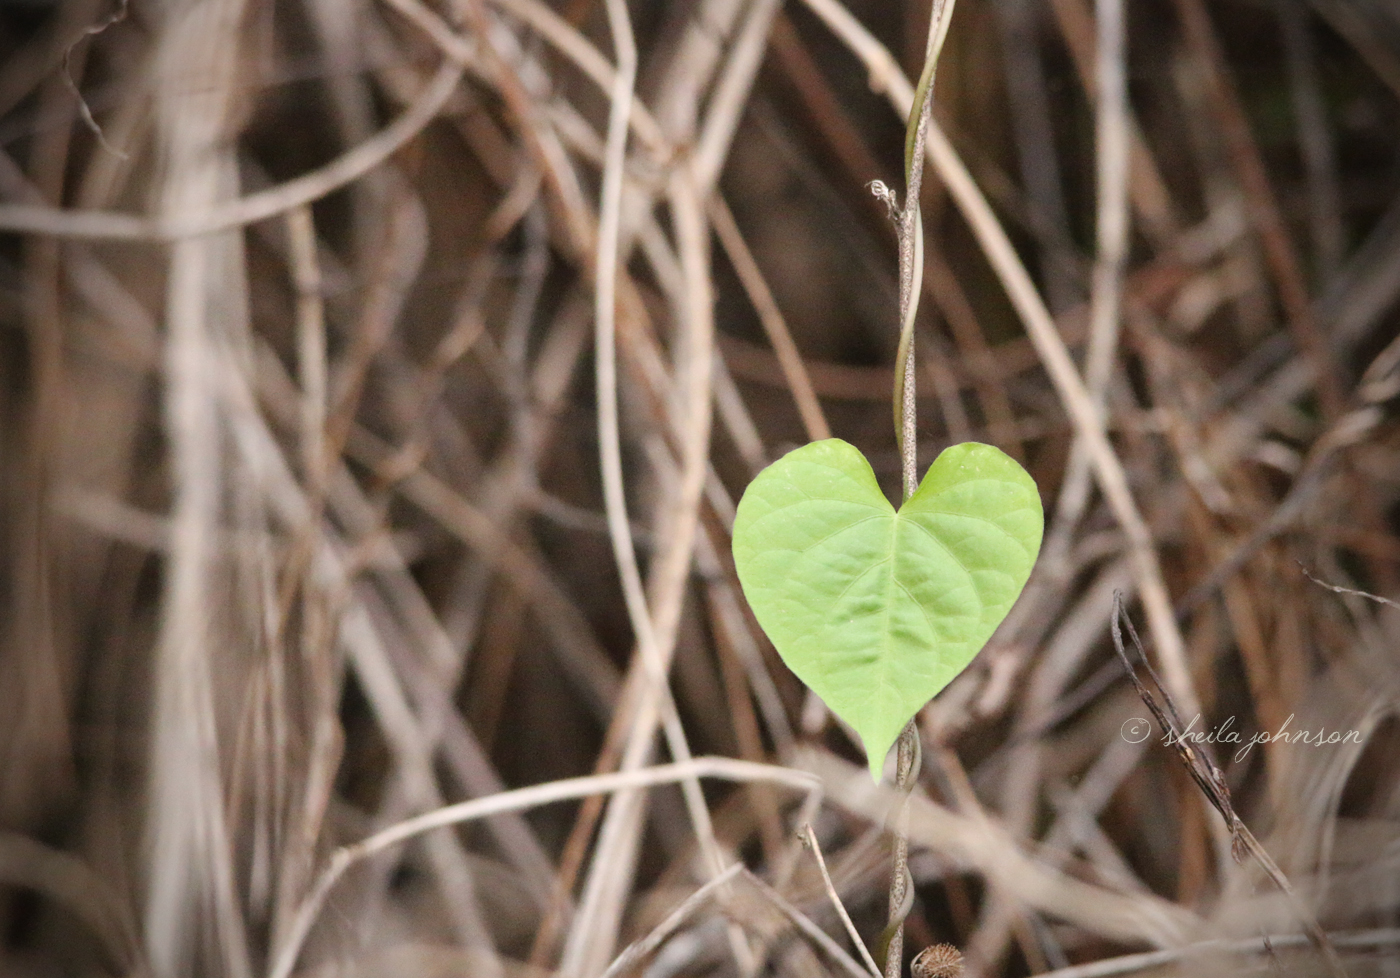 Millions Of Green Heart-Shaped Leaves, And The Universe Loves To Put Them In Our Path In Such Ways As To Make Them Stand Out.